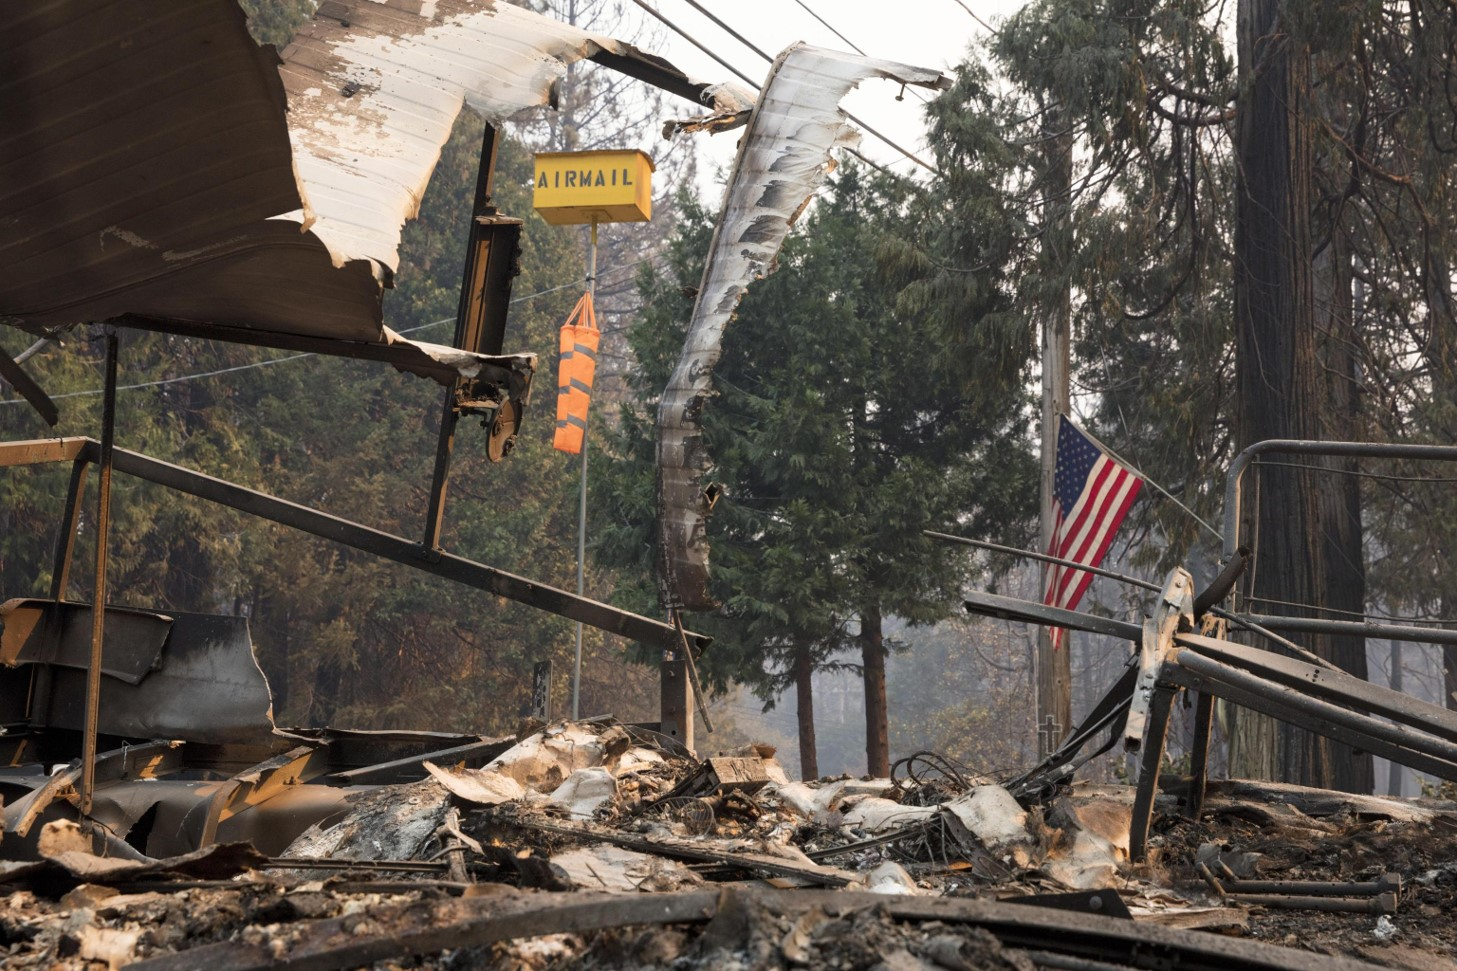 Lo scenario catastrofico post-incendio a Magalia (Contea di Butte, California)